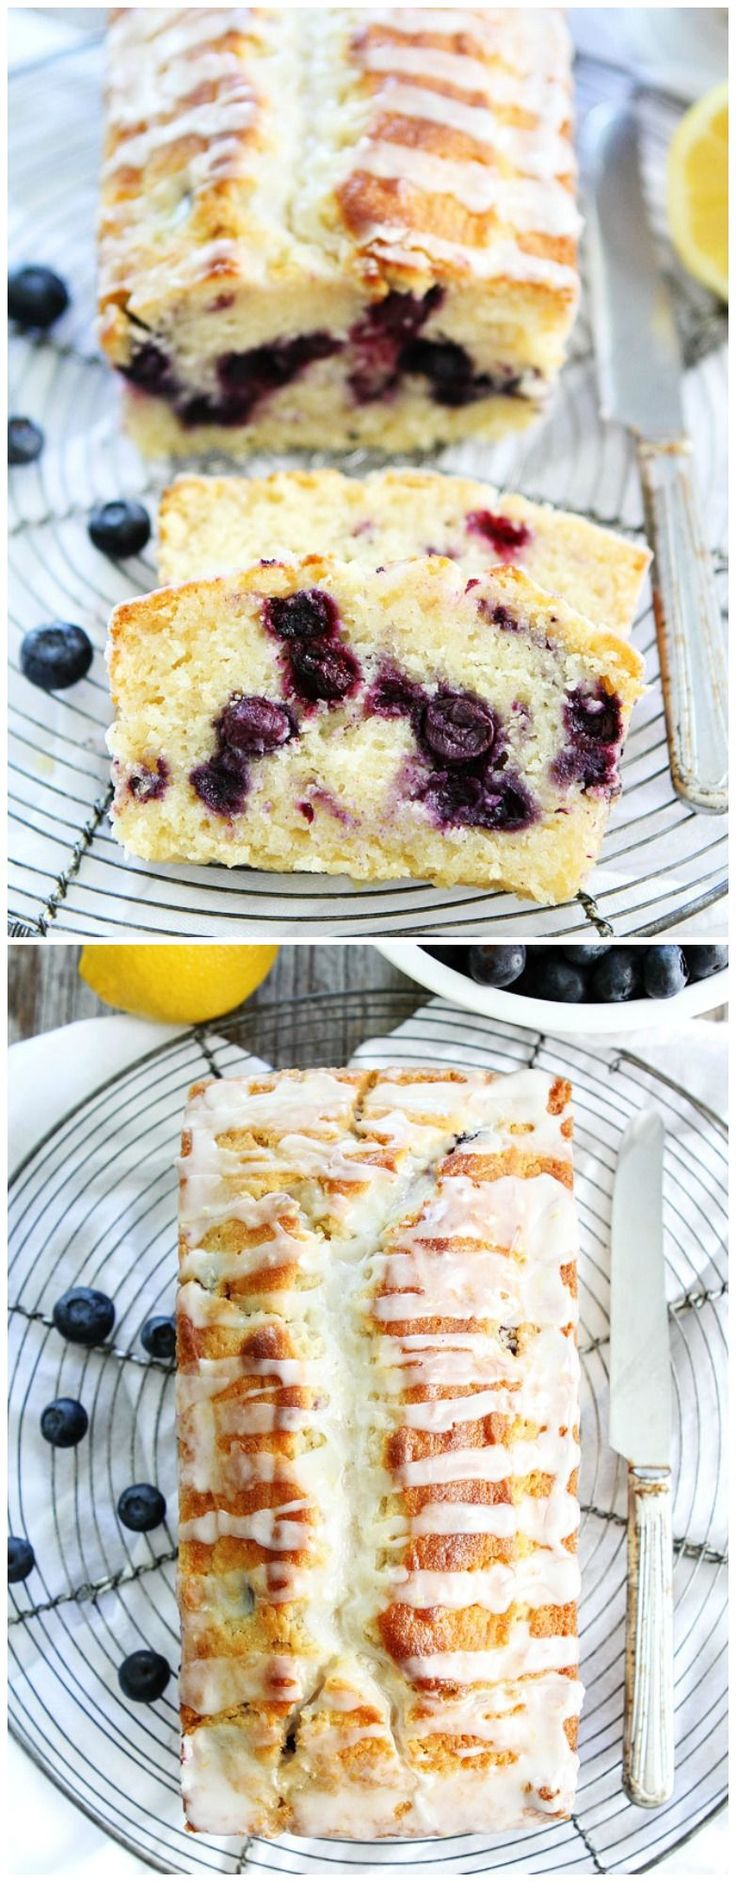 Lemon Blueberry Loaf Cake Recipe on twopeasandtheirpod.com This simple lemon loaf cake is bursting with blueberries! It is the BEST cake recipe!